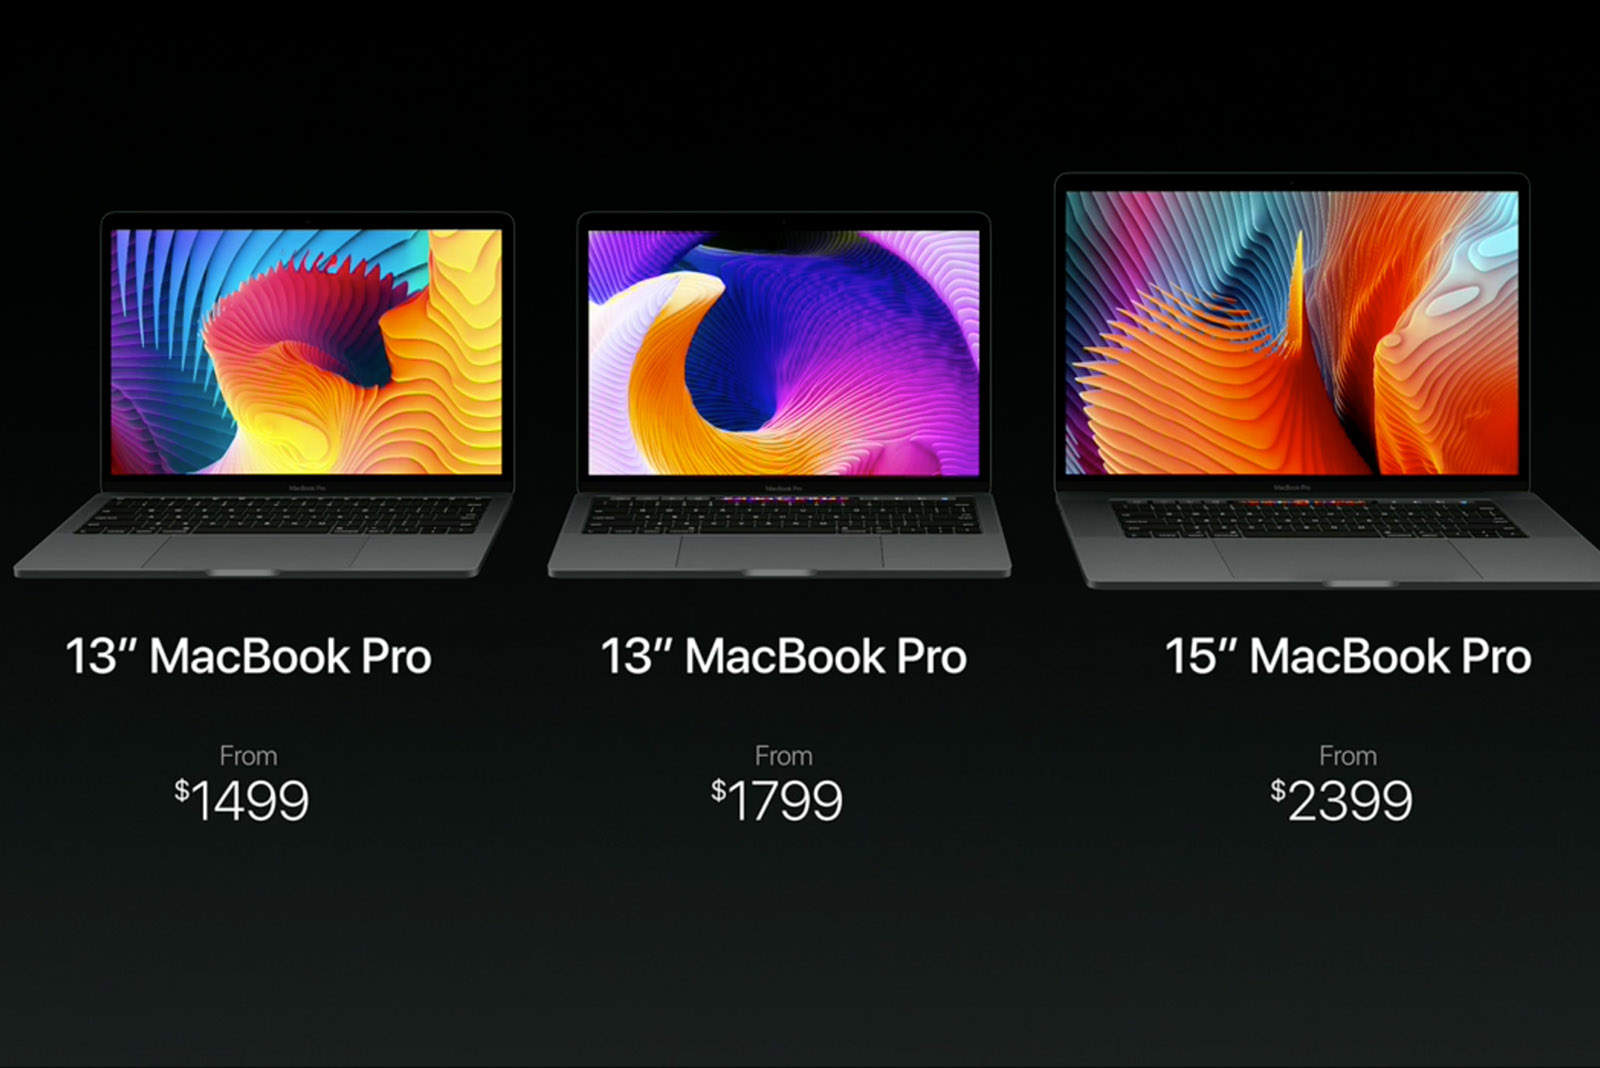 The MacBook Pro will be more affordable next year.